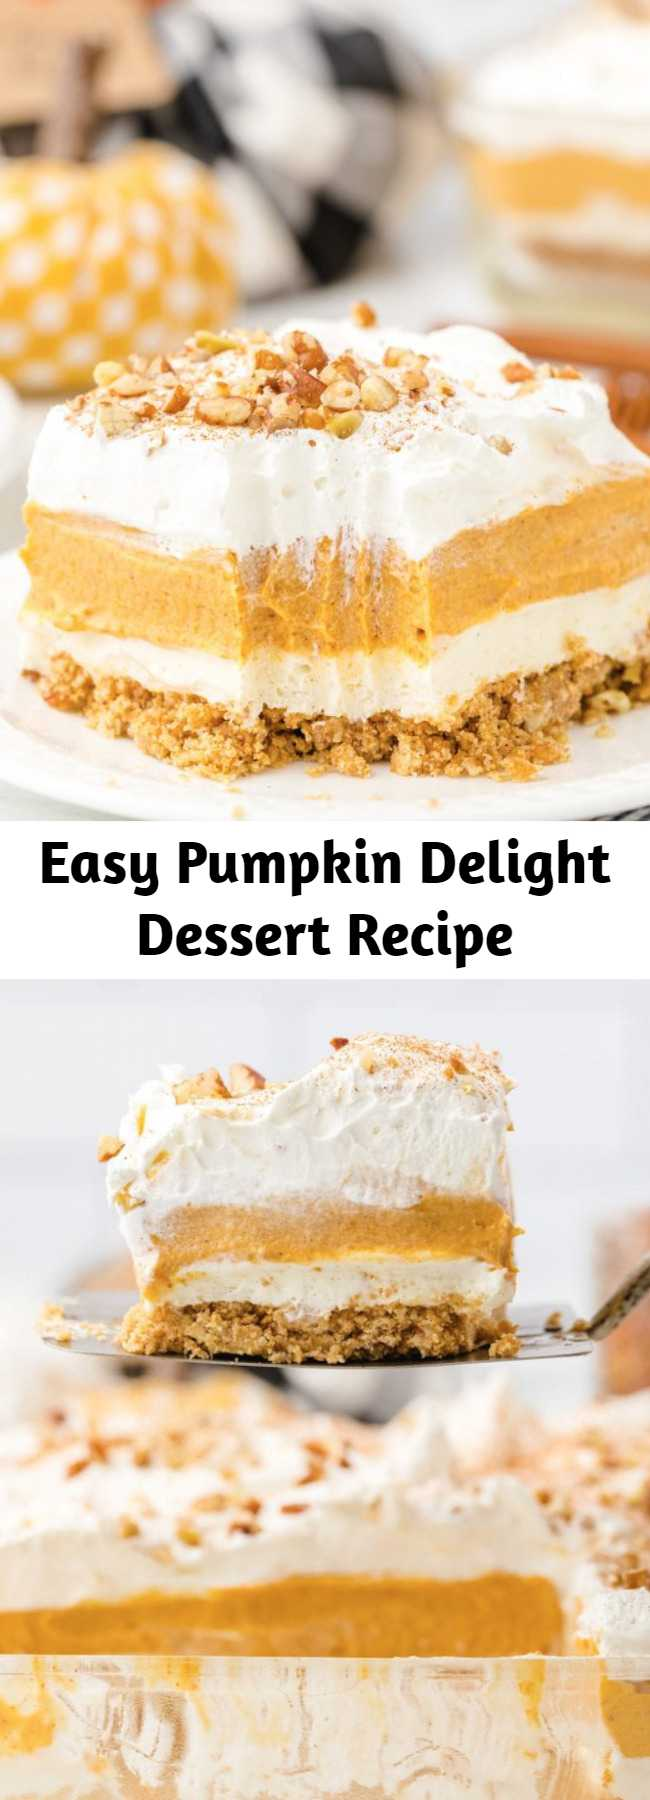 Easy Pumpkin Delight Dessert Recipe - Instead of classic pumpkin pie this fall (or Thanksgiving!), try this easy pumpkin delight instead! A homemade pecan and graham cracker mix forms a crust that is topped with layers of light and fluffy filling including cream cheese, pudding, and Cool Whip make an irresistible treat.